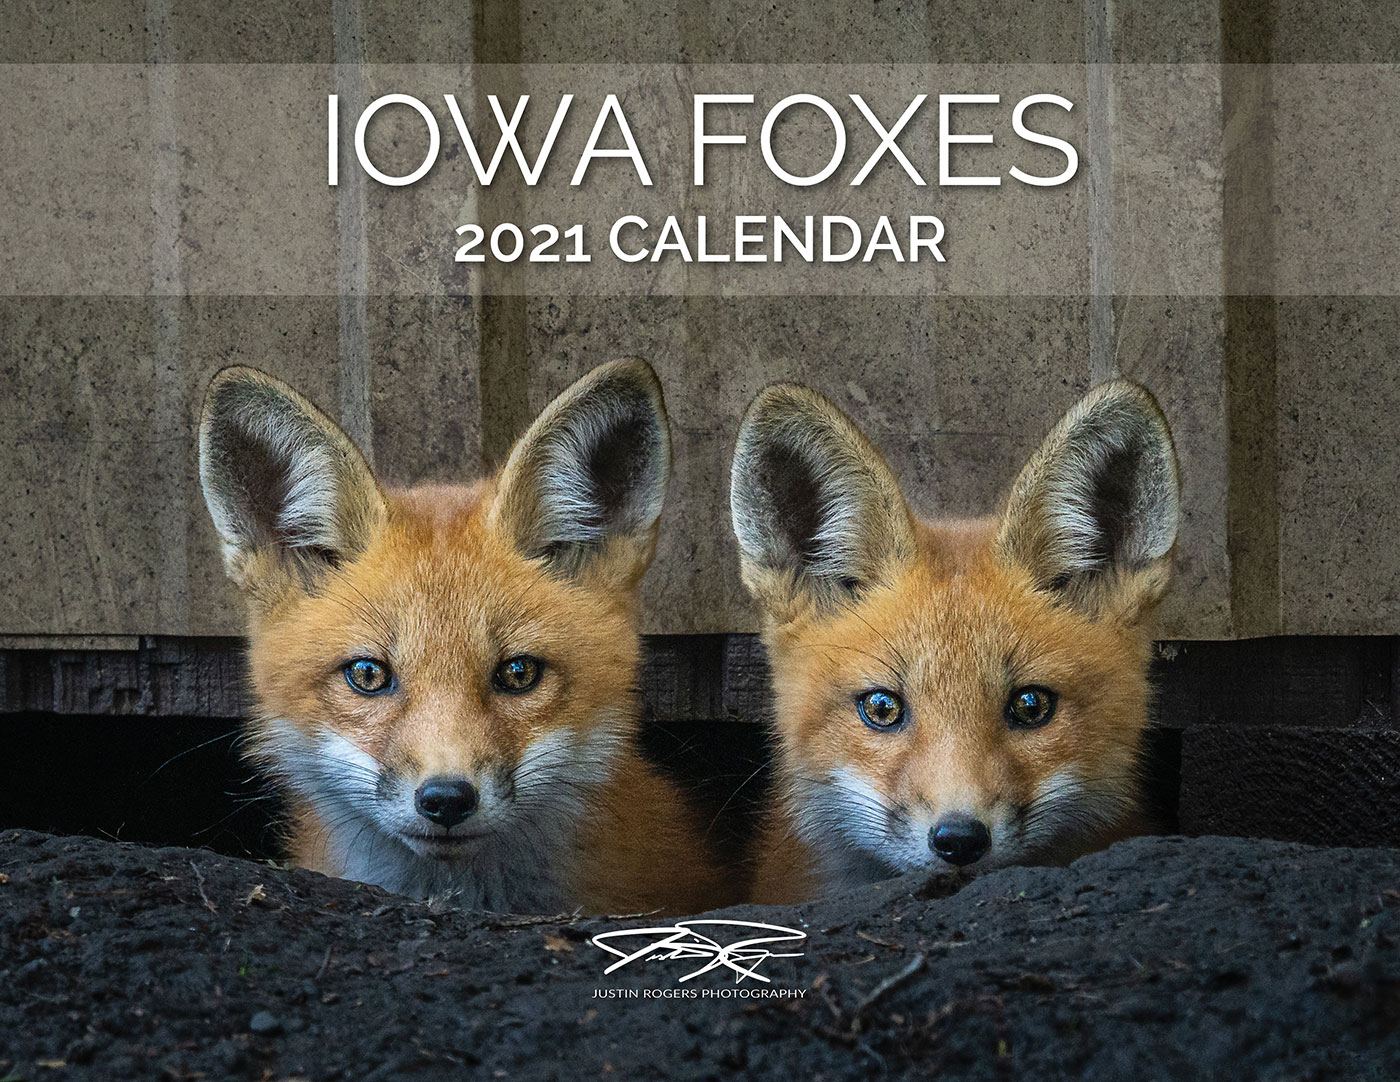 2021 Calendar: Iowa Foxes